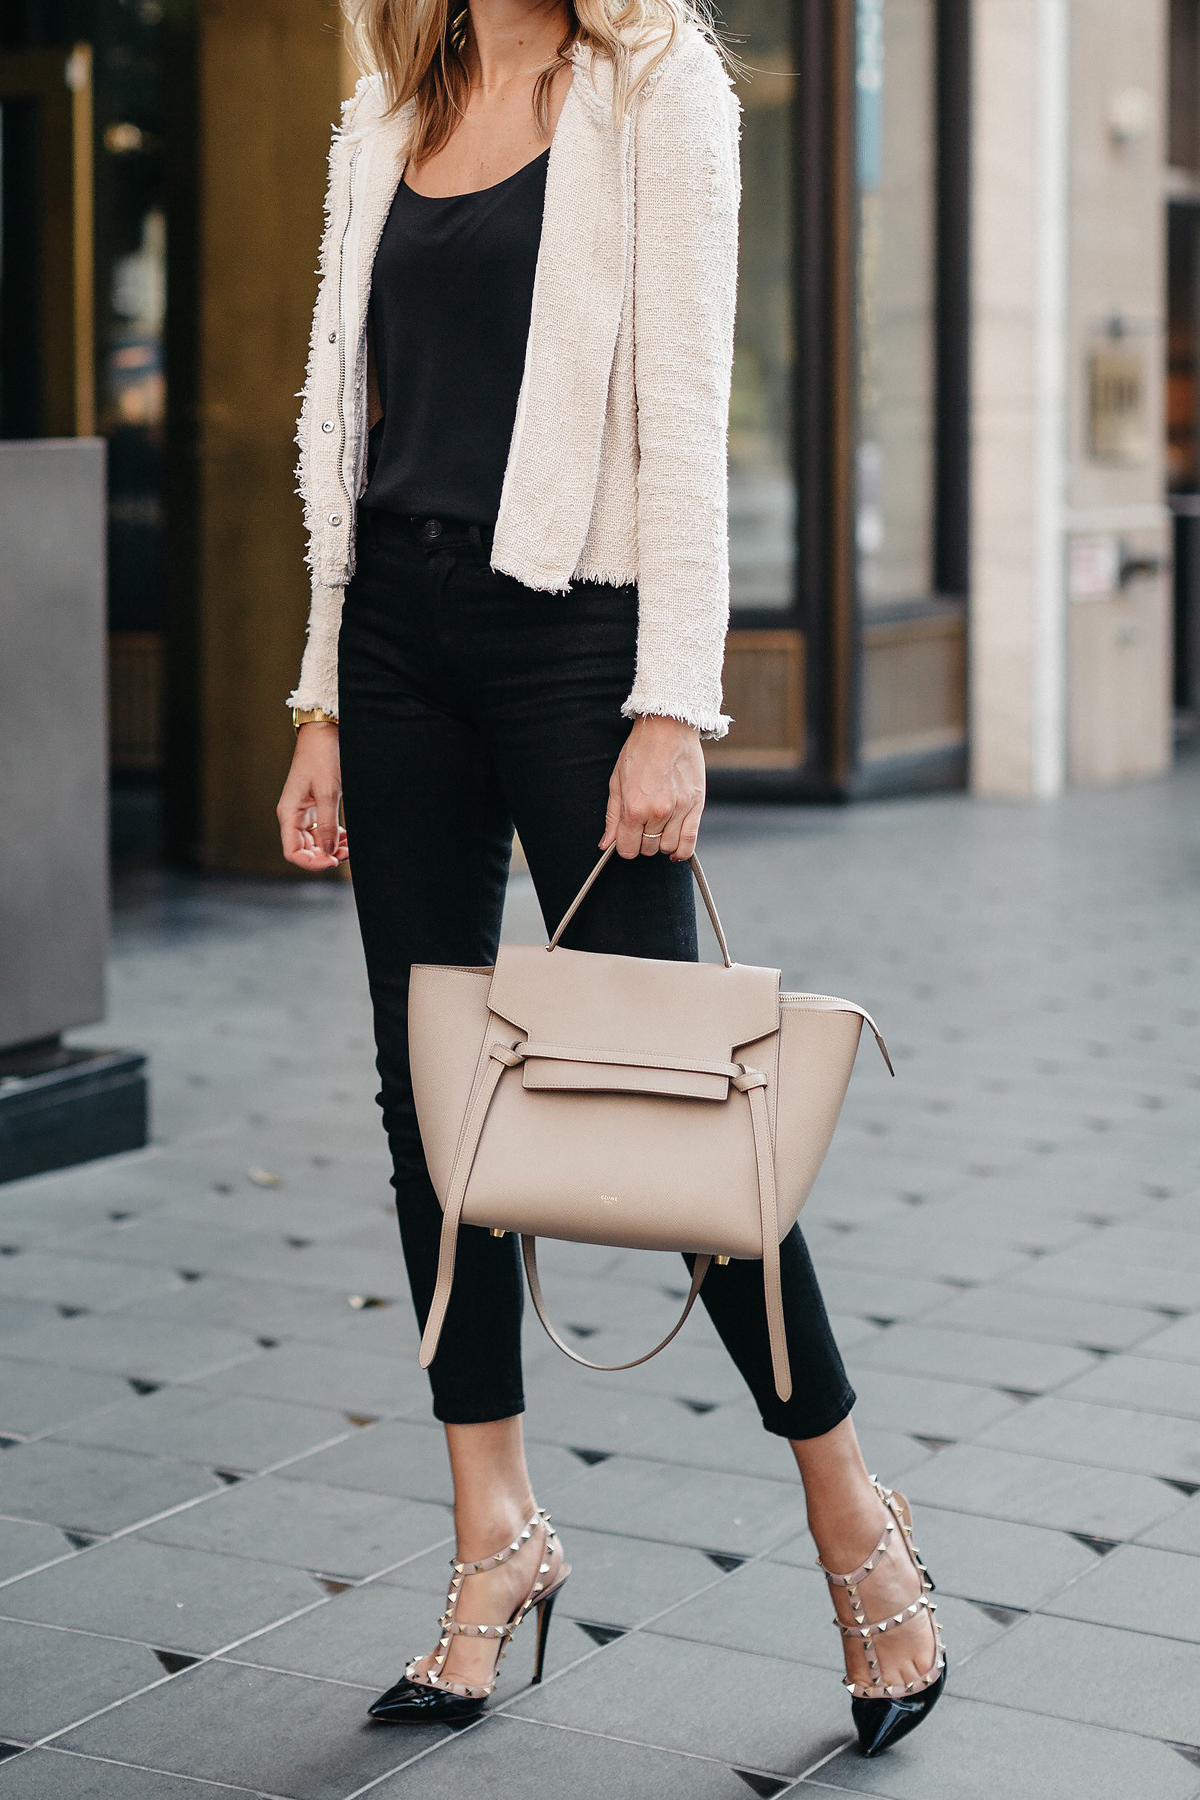 IRO Agnette Tweed Jacket Black Skinny Jeans Celine Belt Bag Valentino Rockstud Pumps Fashion Jackson Dallas Blogger Fashion Blogger Street Style